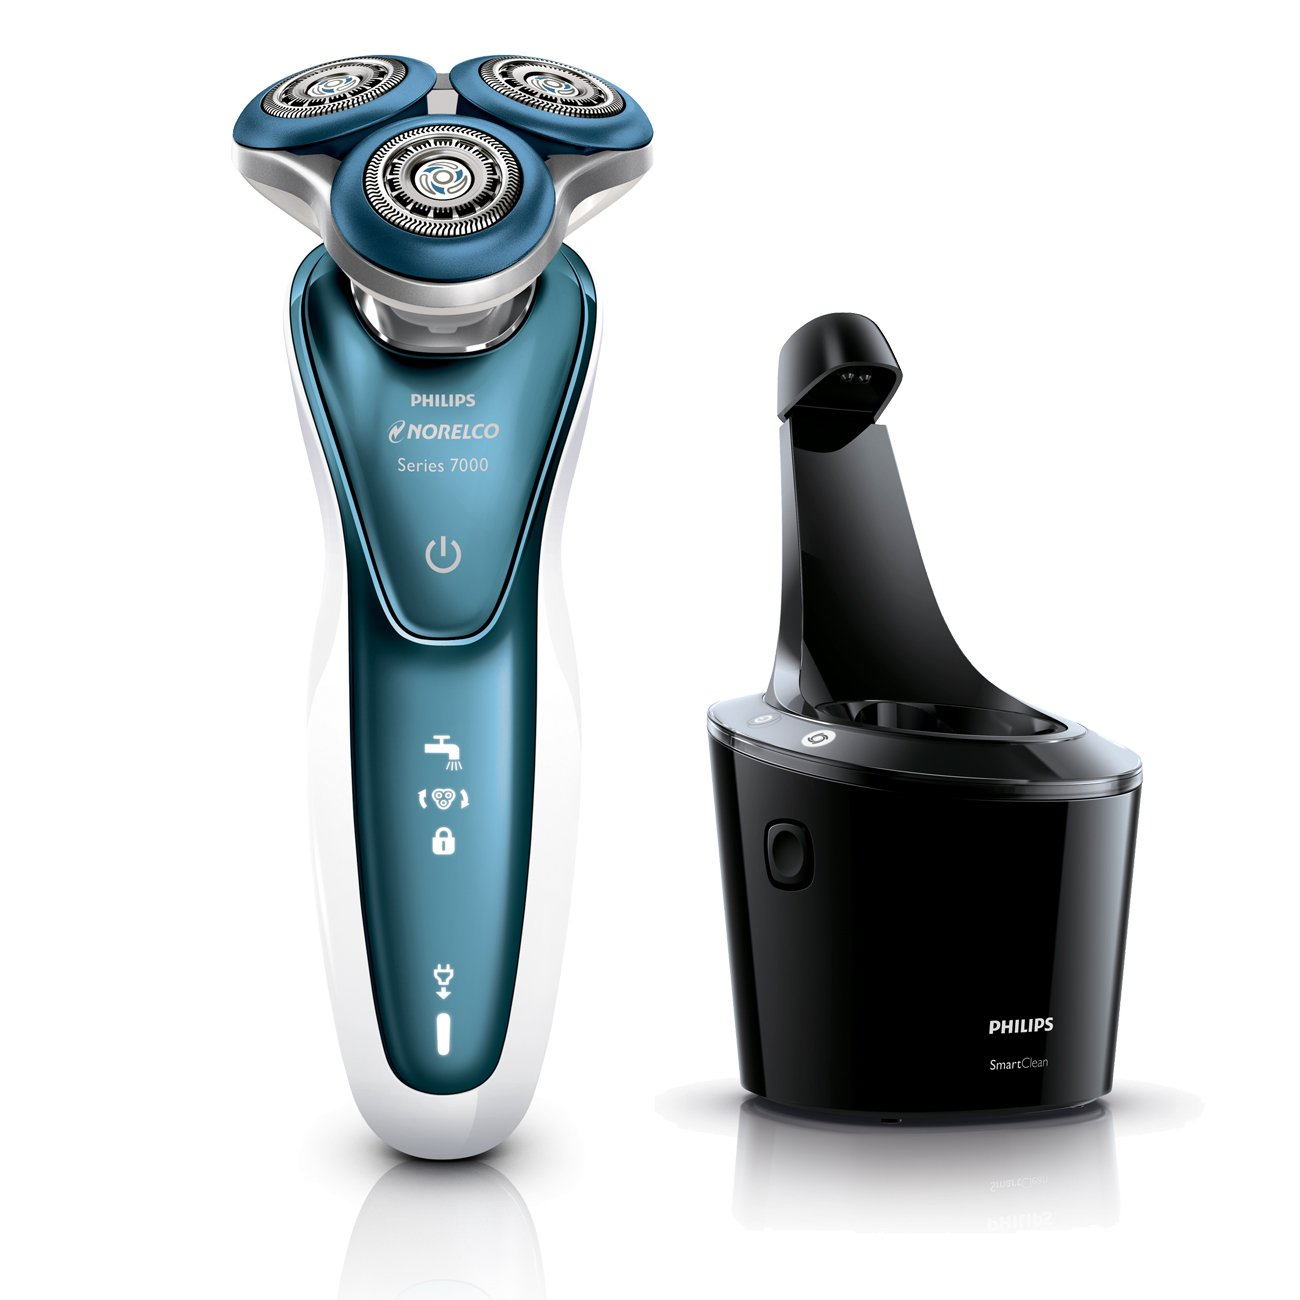 Philips Norelco Shaver 7300 for Sensitive Skin, S7370/84, Standard Packaging